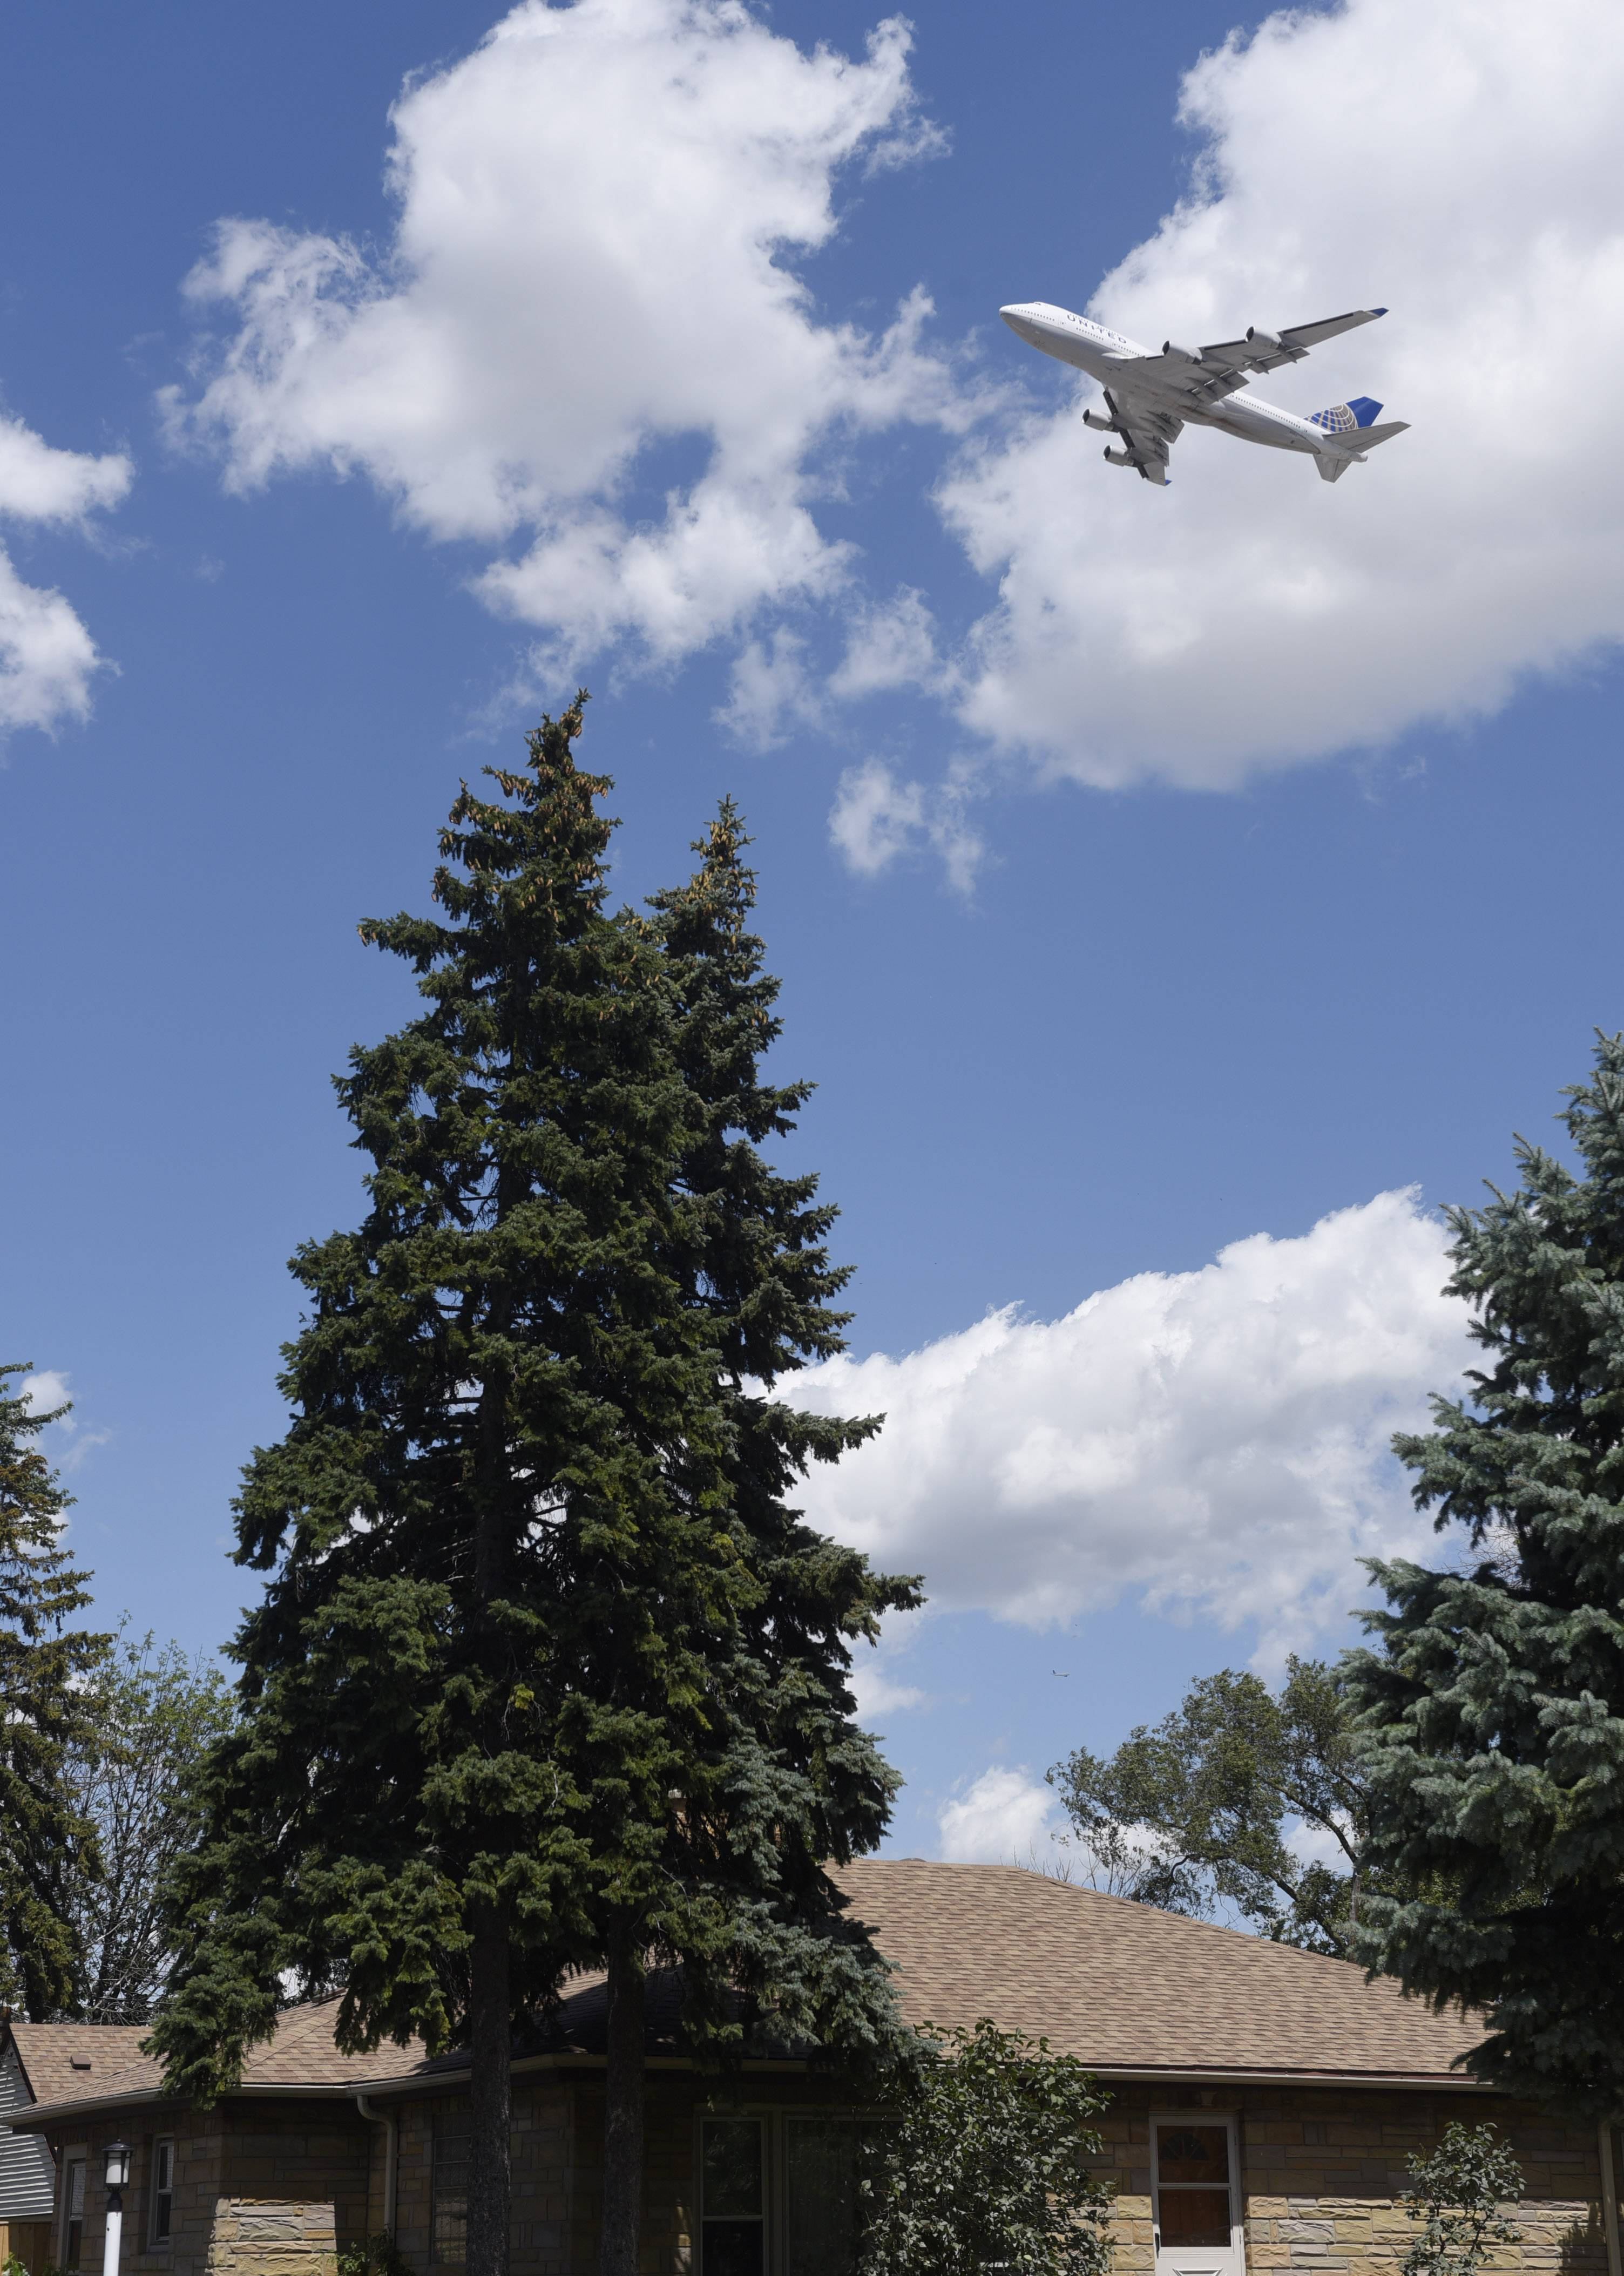 A plane flies above a neighborhood along Hillside Drive in Bensenville after takeoff from O'Hare airport. Homeowners are suing Chicago over jet noise.